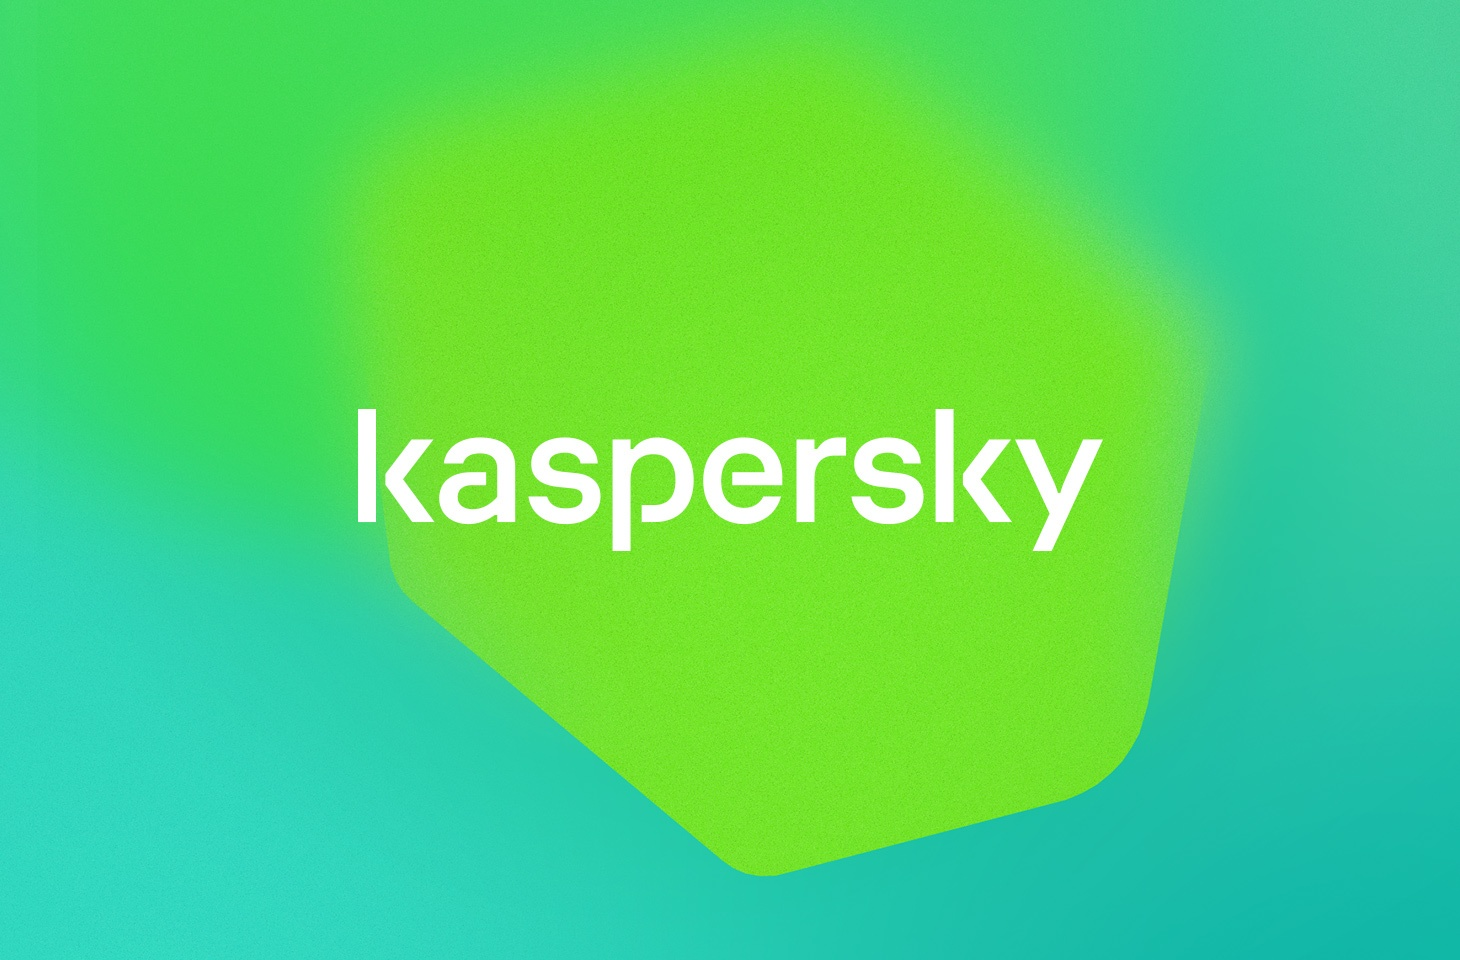 Kaspersky ICS CERT becomes new member of the global Forum of Incident Response and Security Teams (FIRST)